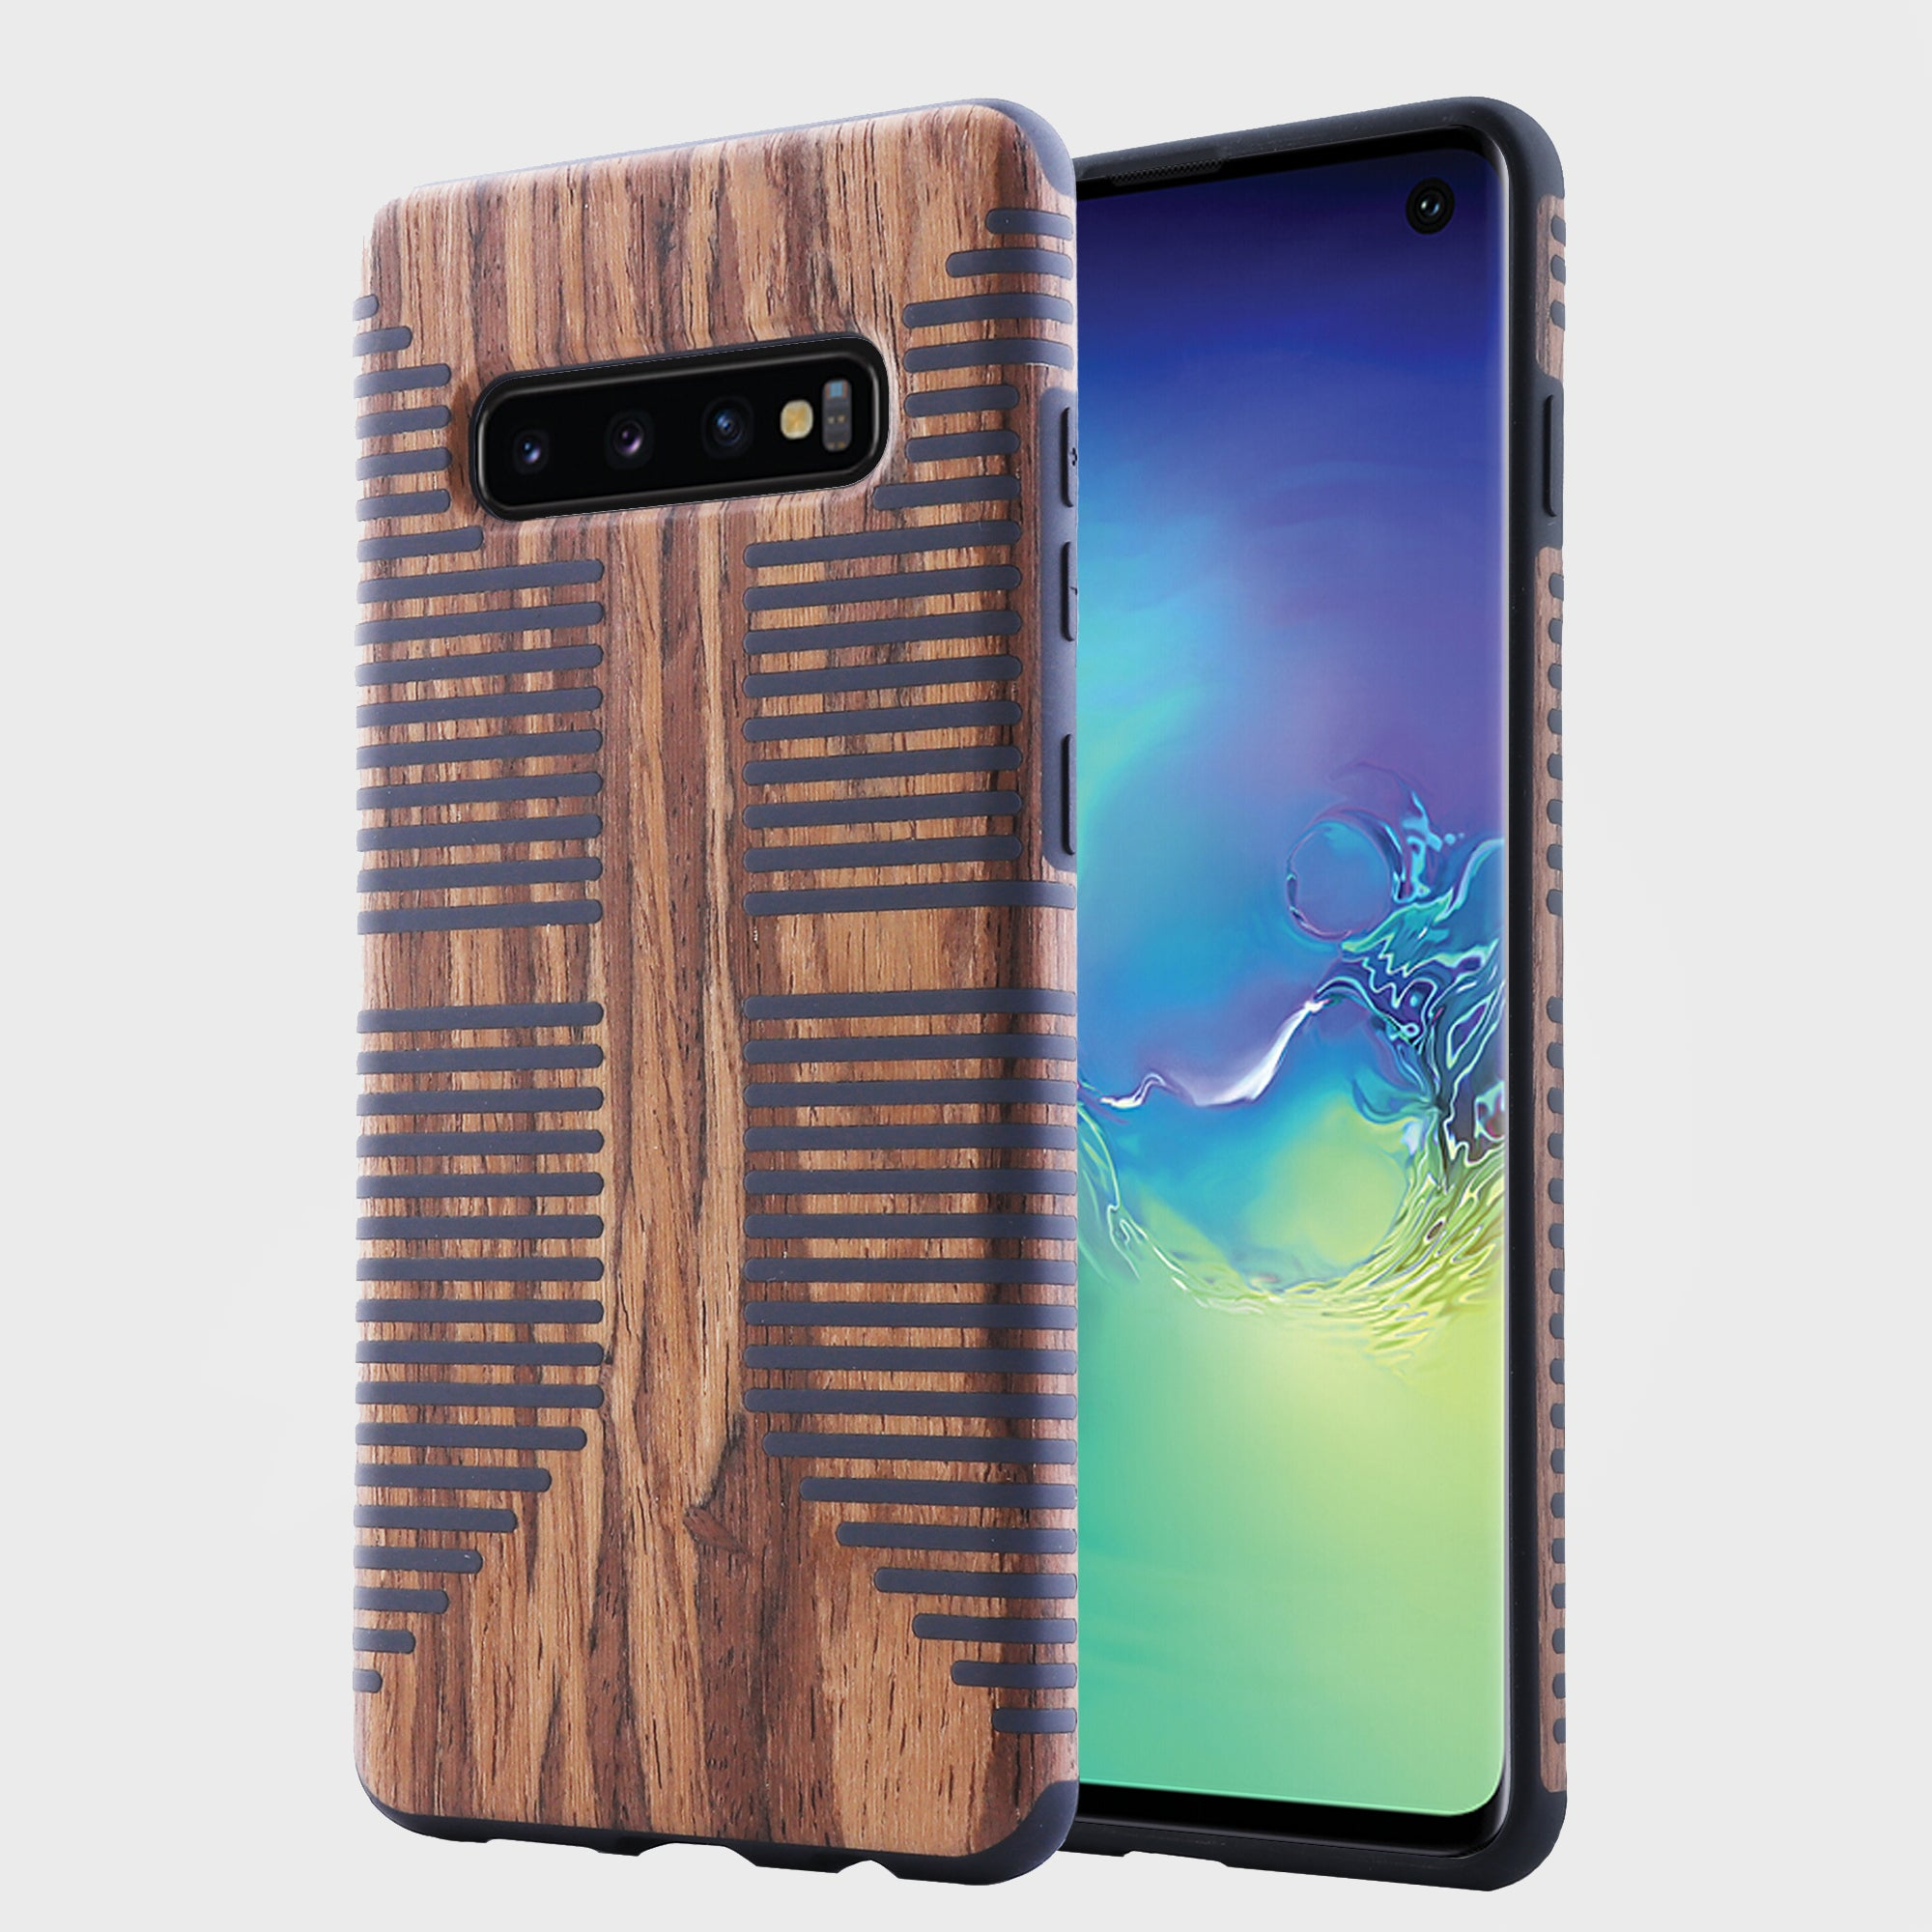 Wood Grain Texture Case for Samsung Galaxy S10 Plus